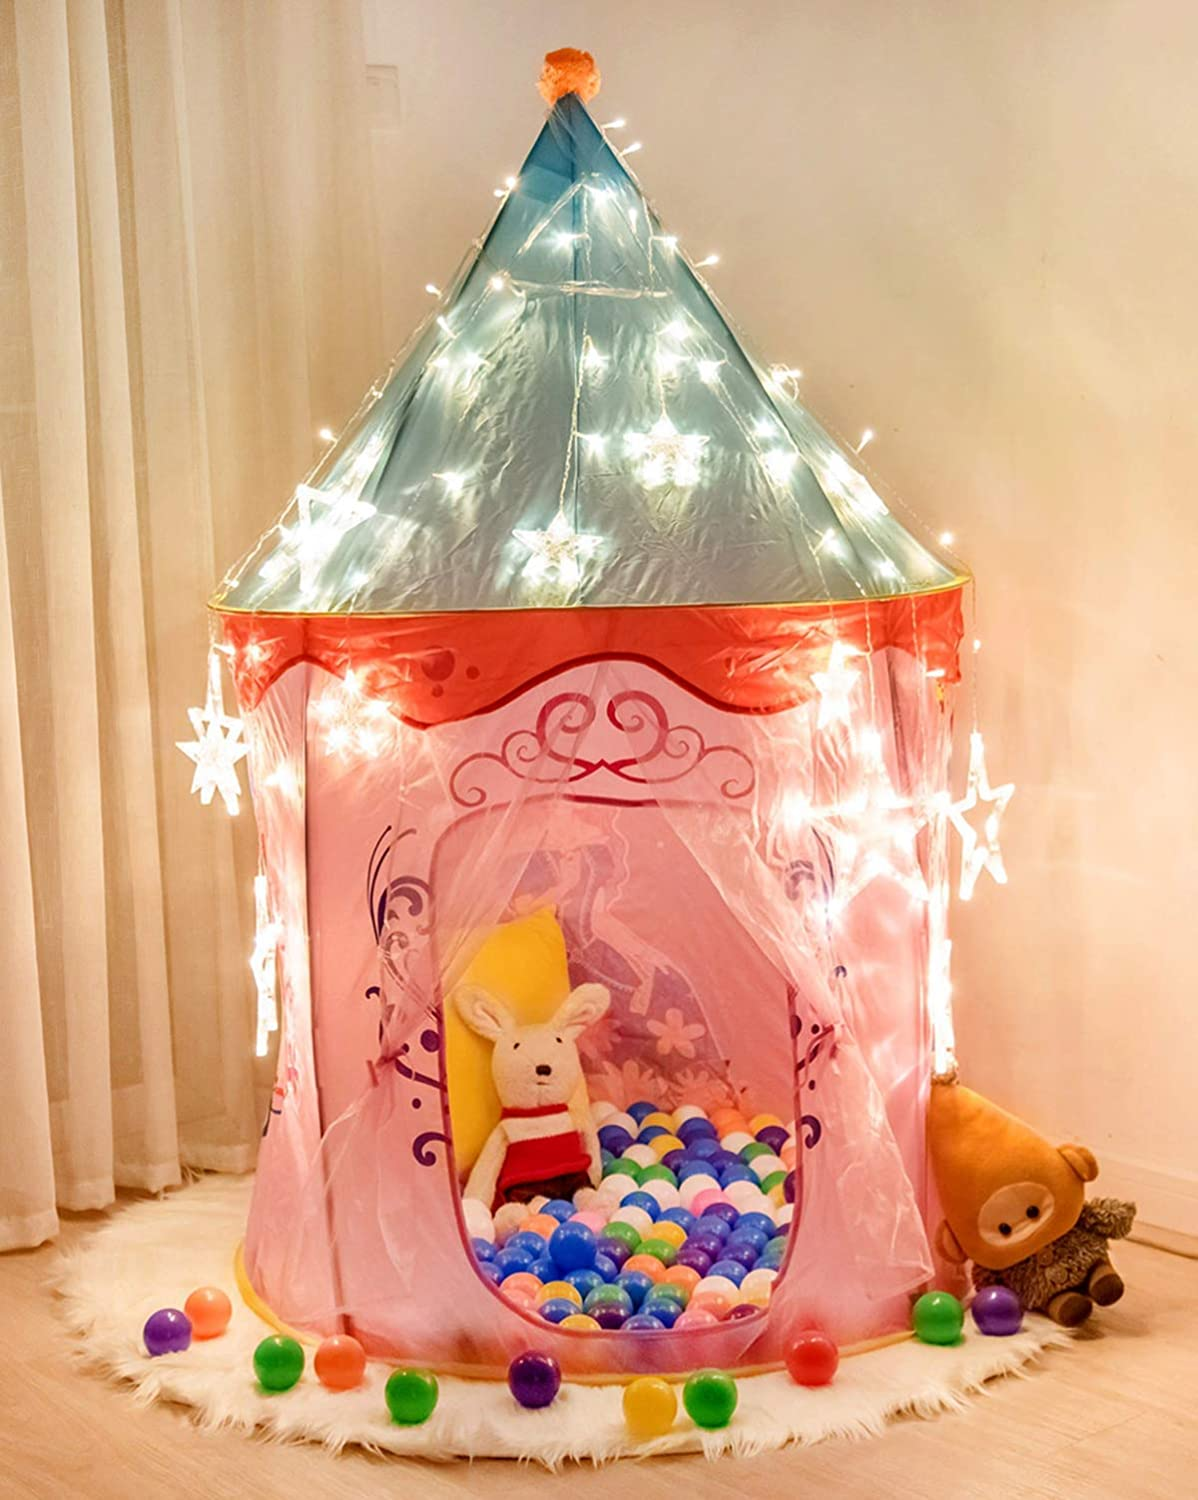 Anyshock Kids Tent, Princess Castle Play Tent Girls Pop Up Baby Toys Dollhouse Outdoor and Indoor Playhouse Tent for 1-8 Years Old Kids Boy Toddler Infant (No LED Light,Princess Pink)